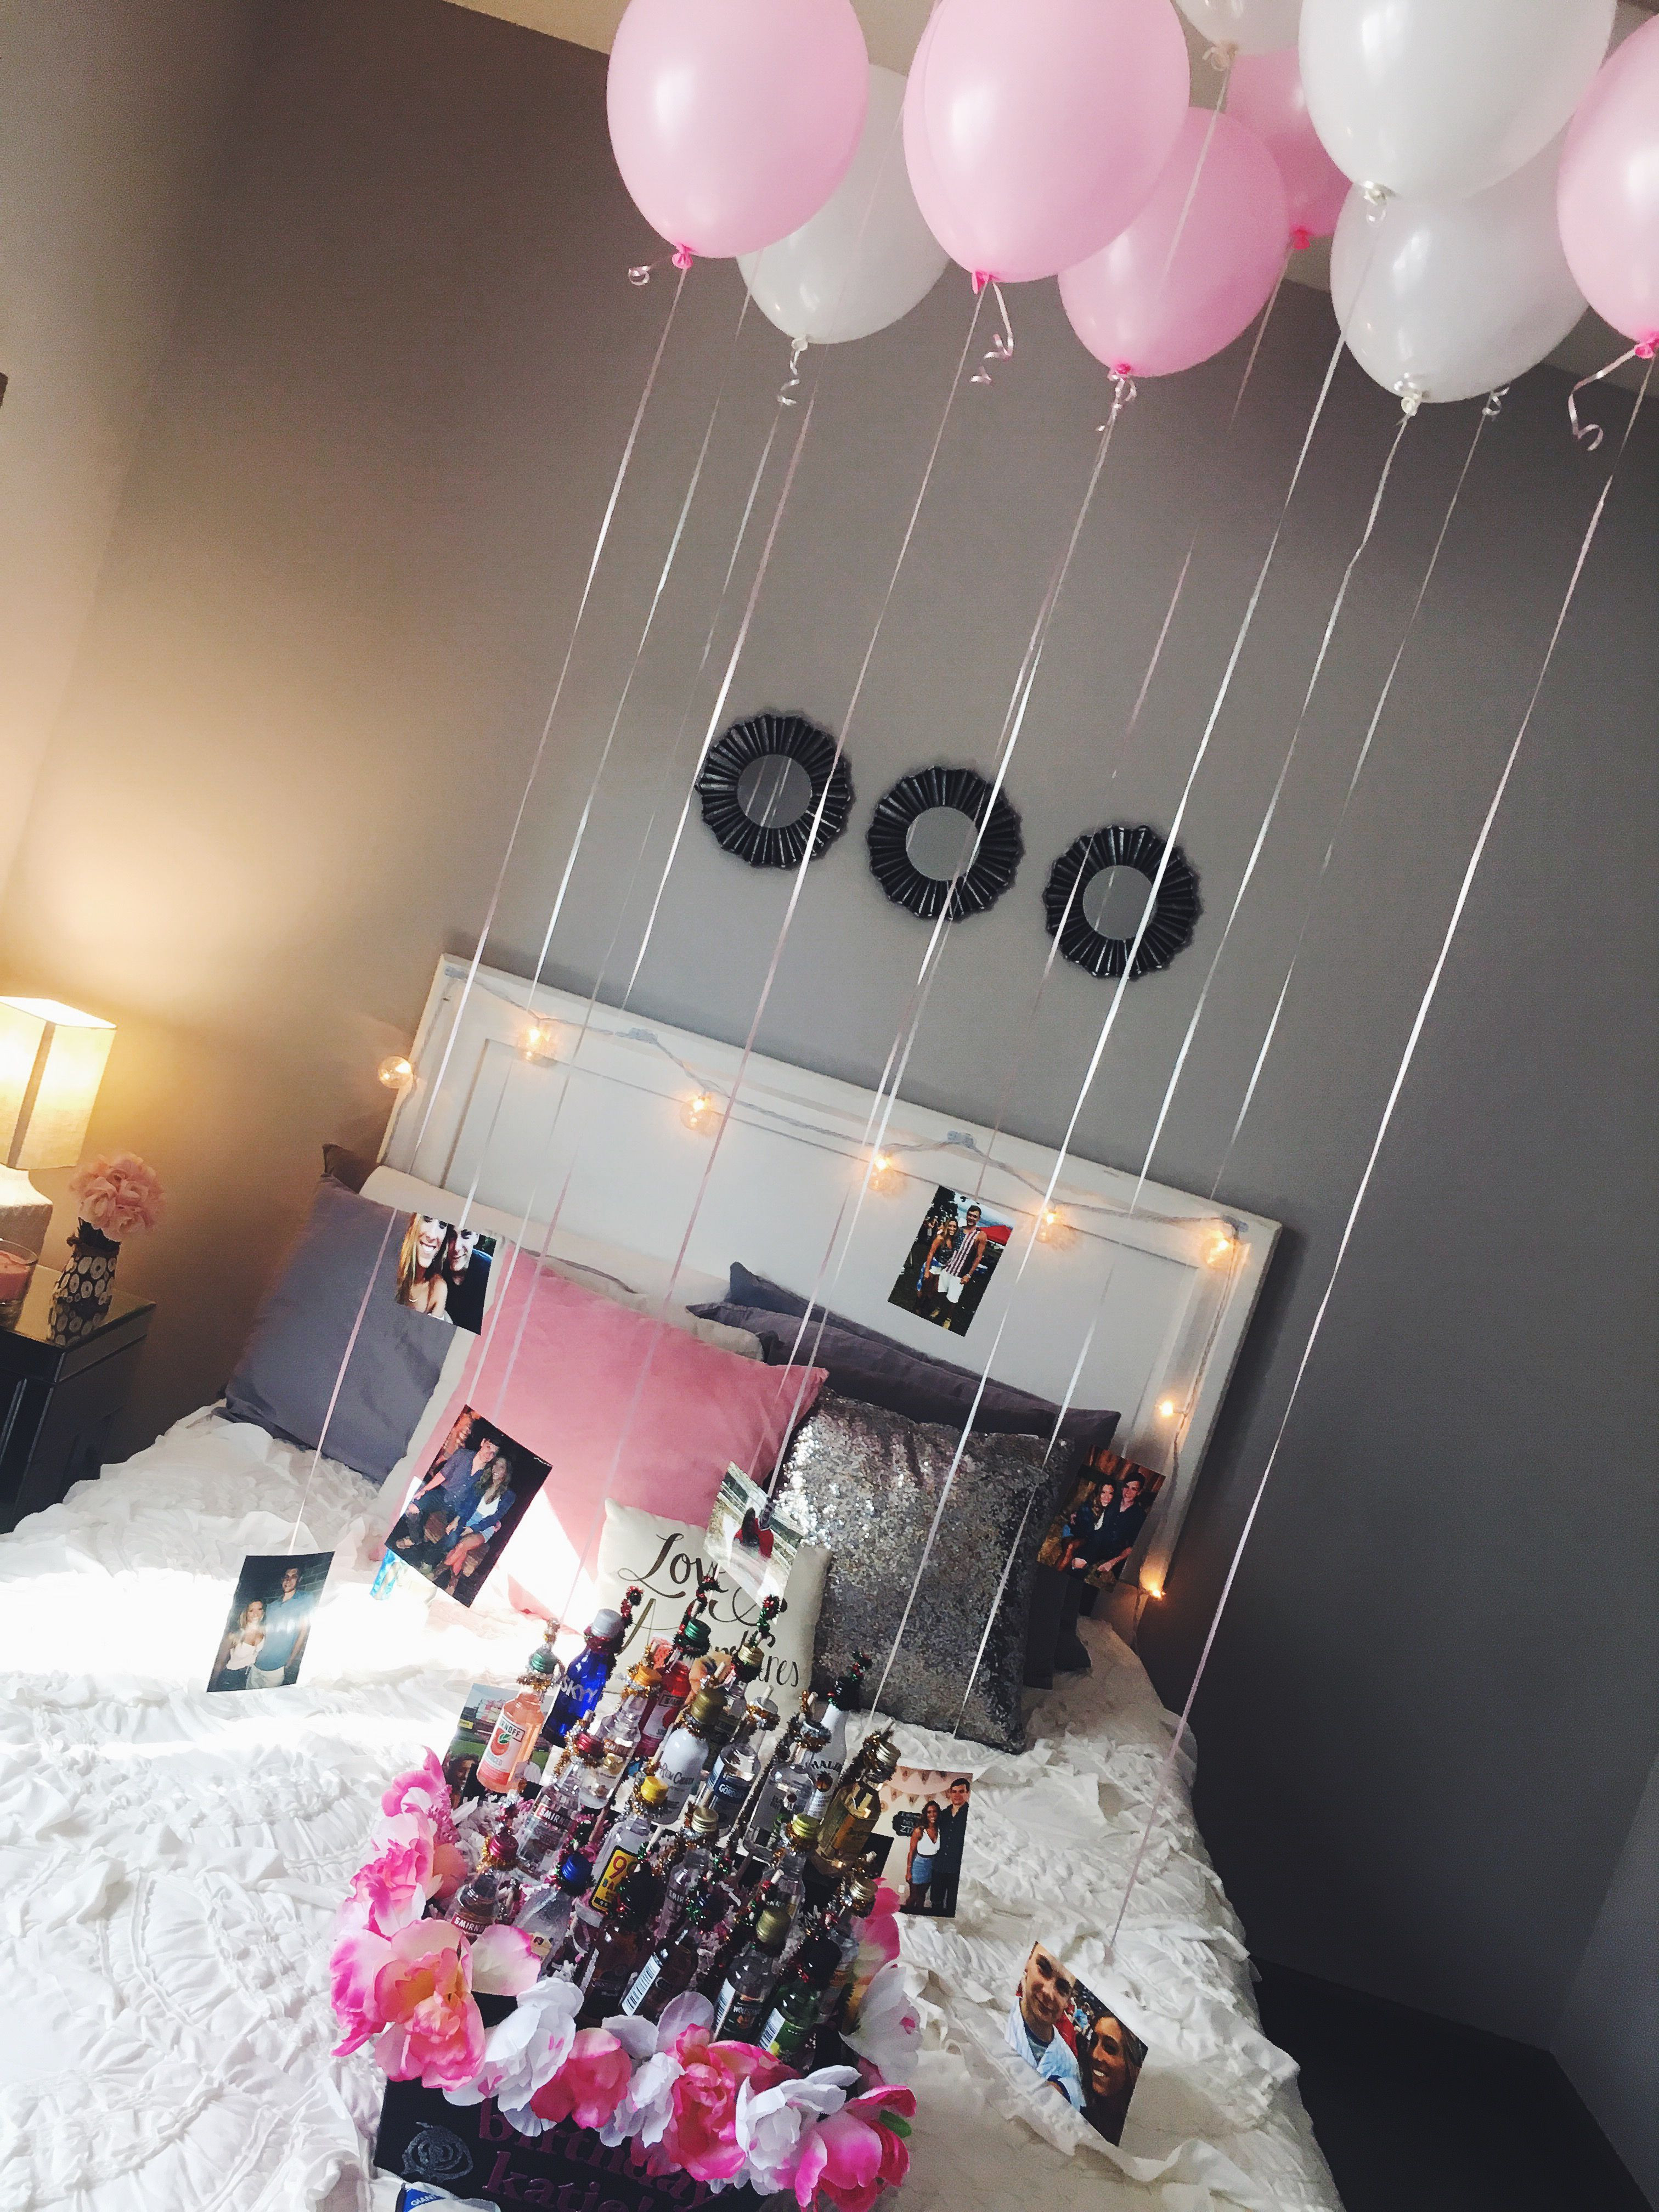 Best ideas about Cheap Gift Ideas For Girlfriend . Save or Pin easy and cute decorations for a friend or girlfriends 21st Now.